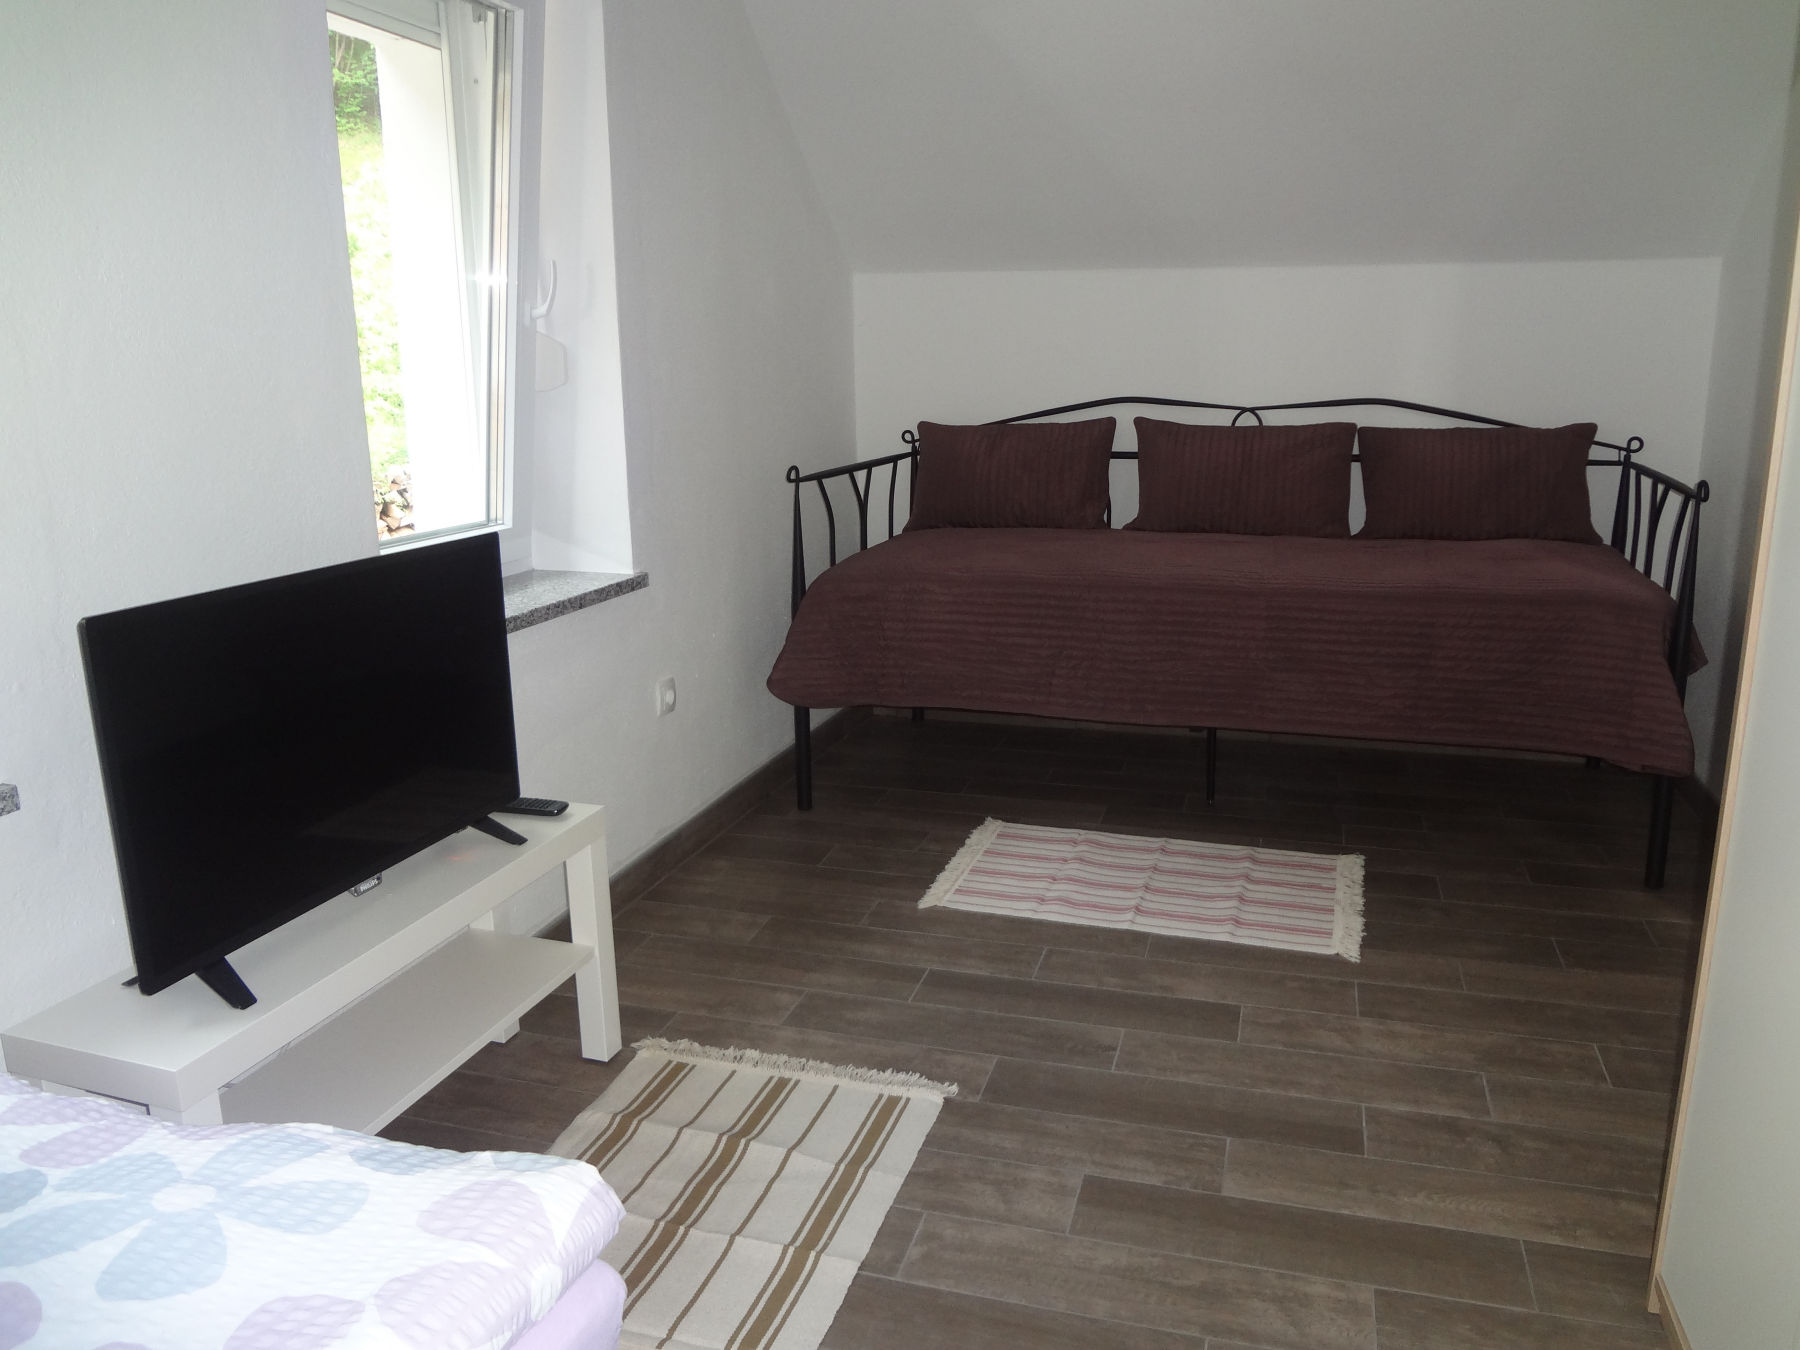 A sofa in the second bedroom of the Fine Stay Apartment in the Bled Area Of Slovenia